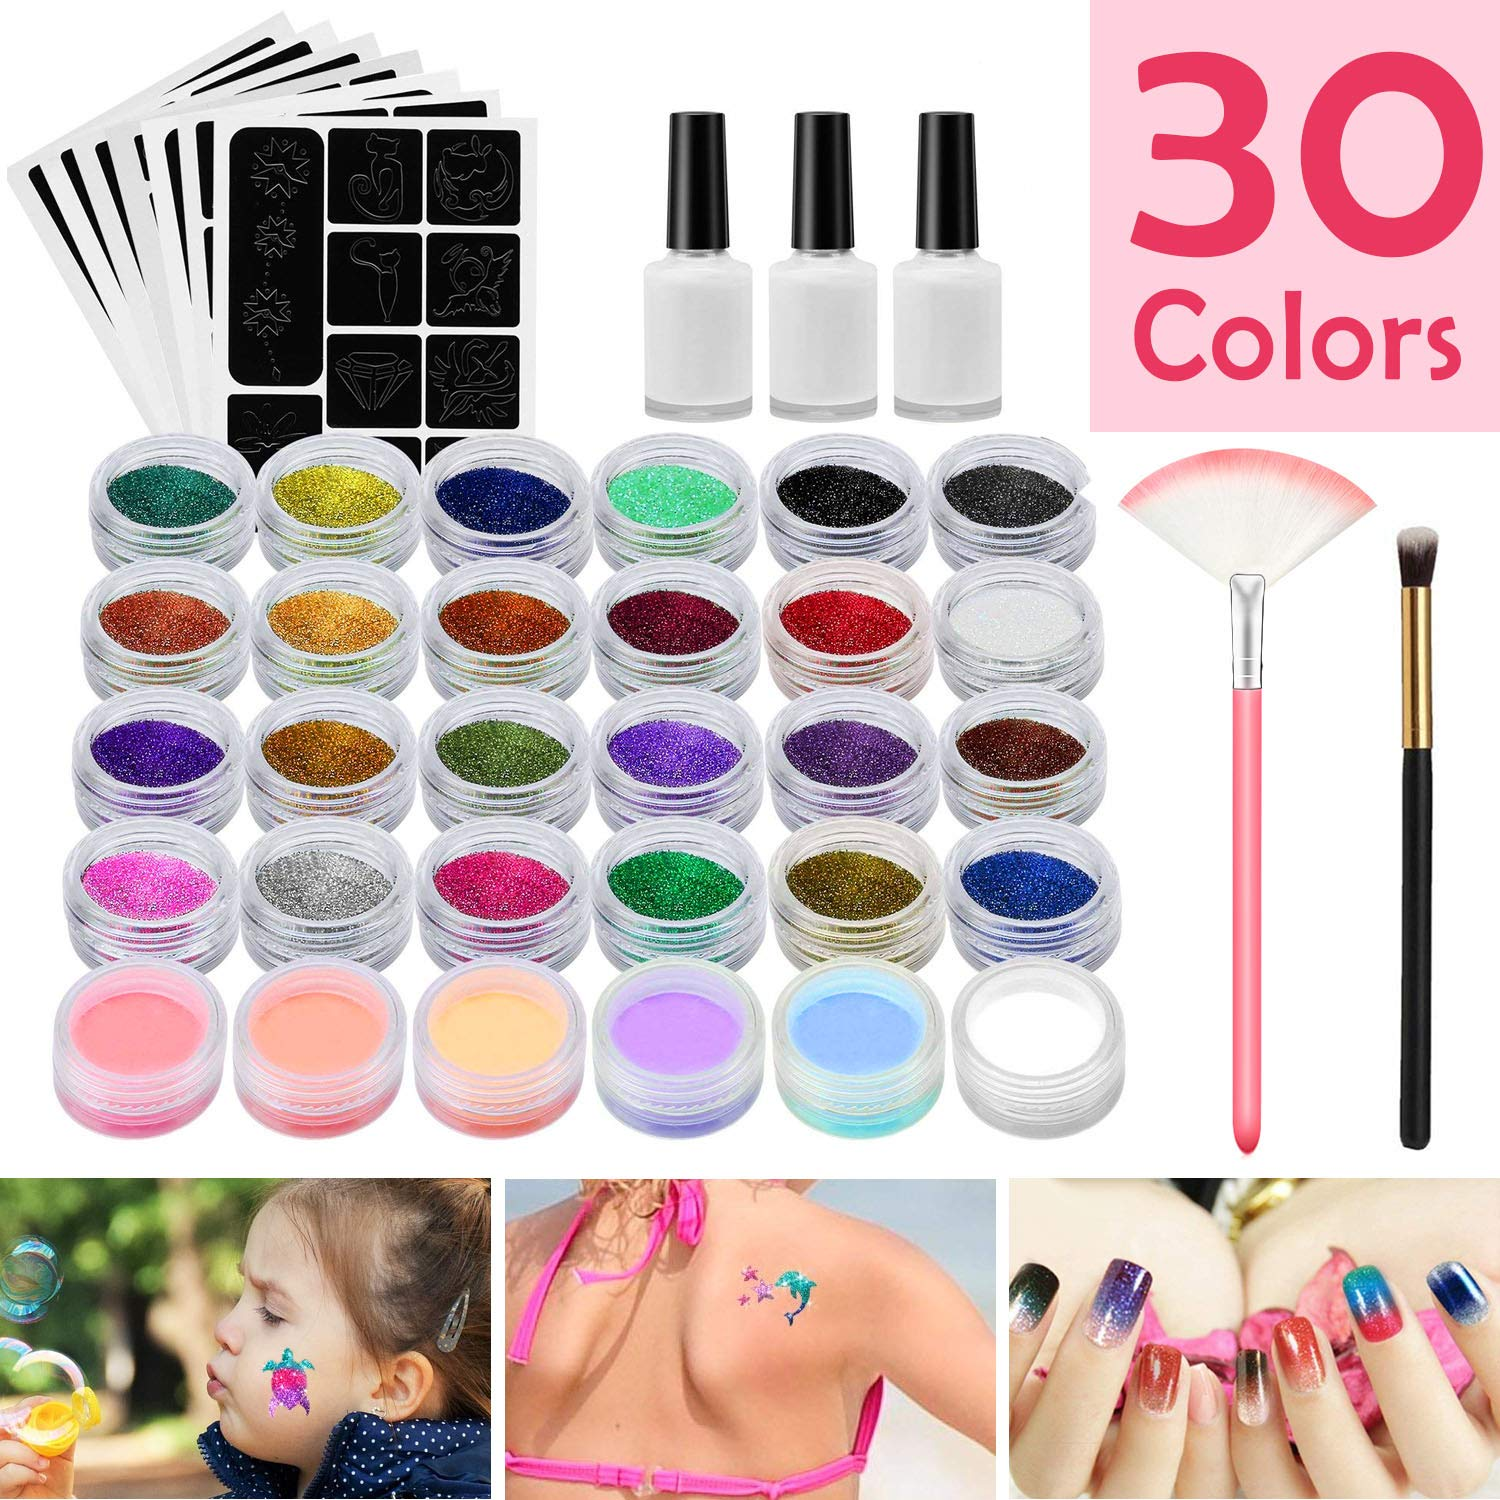 Feadem Glitter Tattoo Kit,Temporary Tattoos Face painting Make Up Body Glitter Body Art Design For Kids, Teenager Adult,Halloween,With 30 Colour Glitter,118 Sheet Uniquely Themed Tattoo Stencil